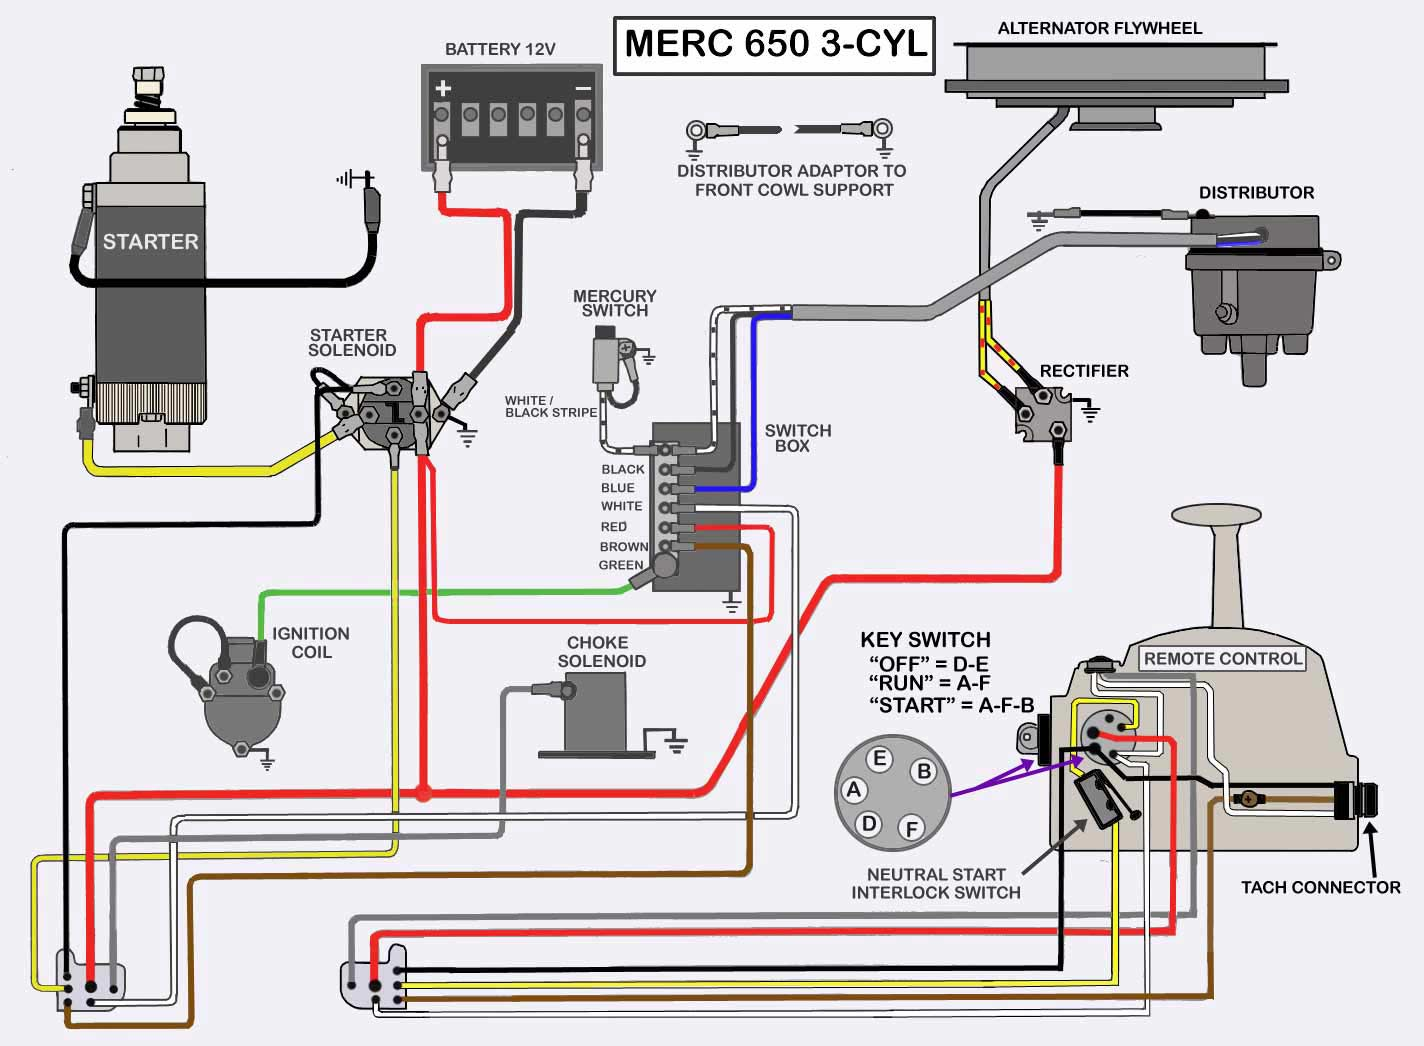 mercury wiring diagram trusted wiring diagrams rh kroud co 2004 Mercury Mountaineer Wiring-Diagram Mercury Outboard Wiring Diagram